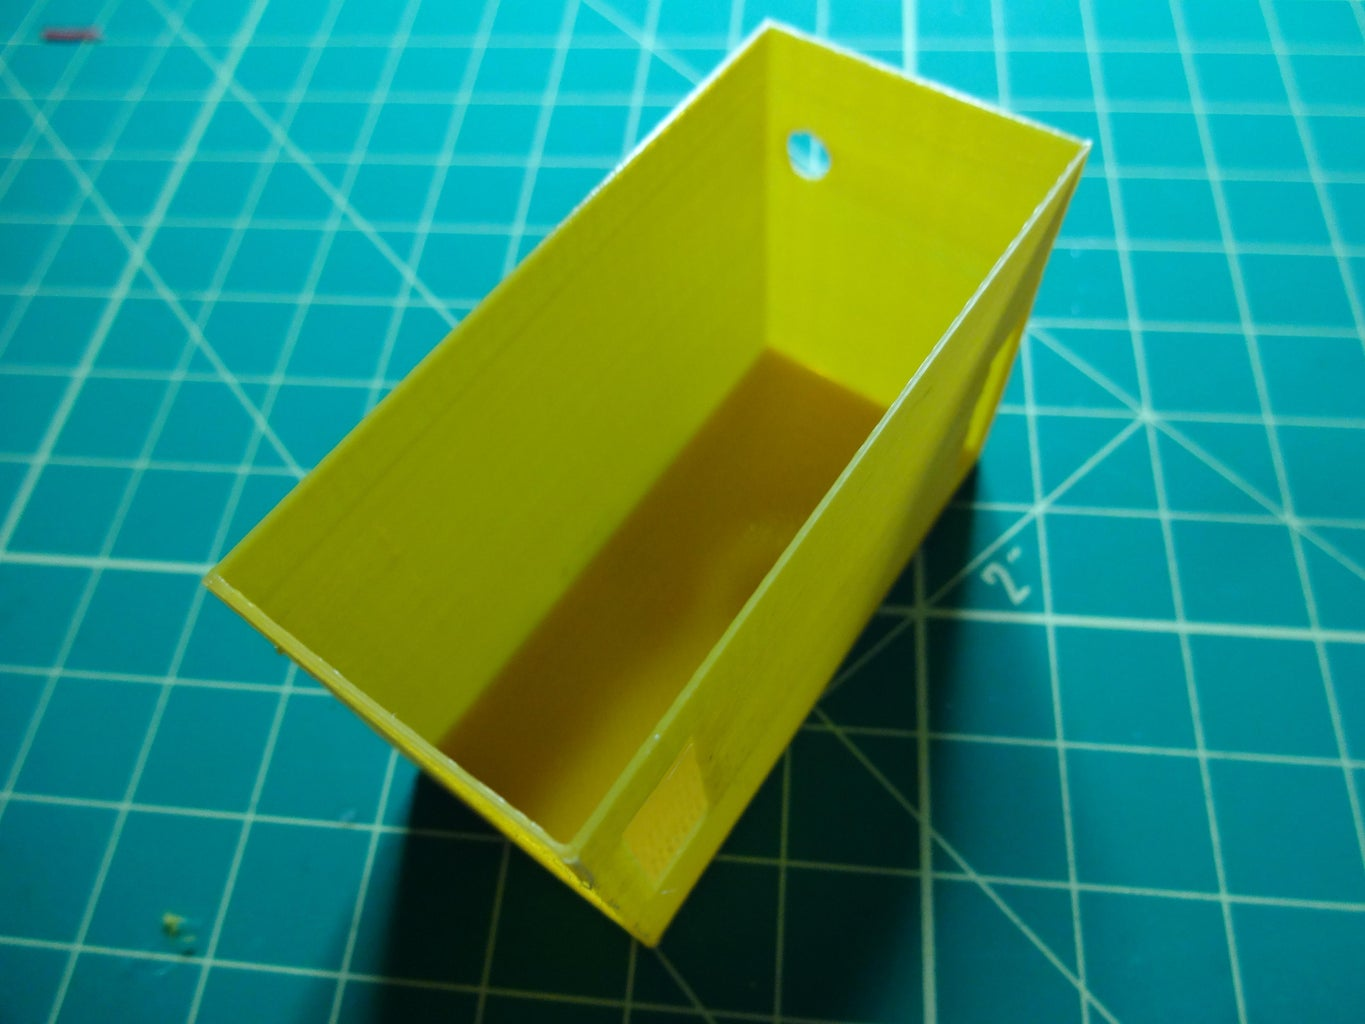 Making the Box and Power Adapter